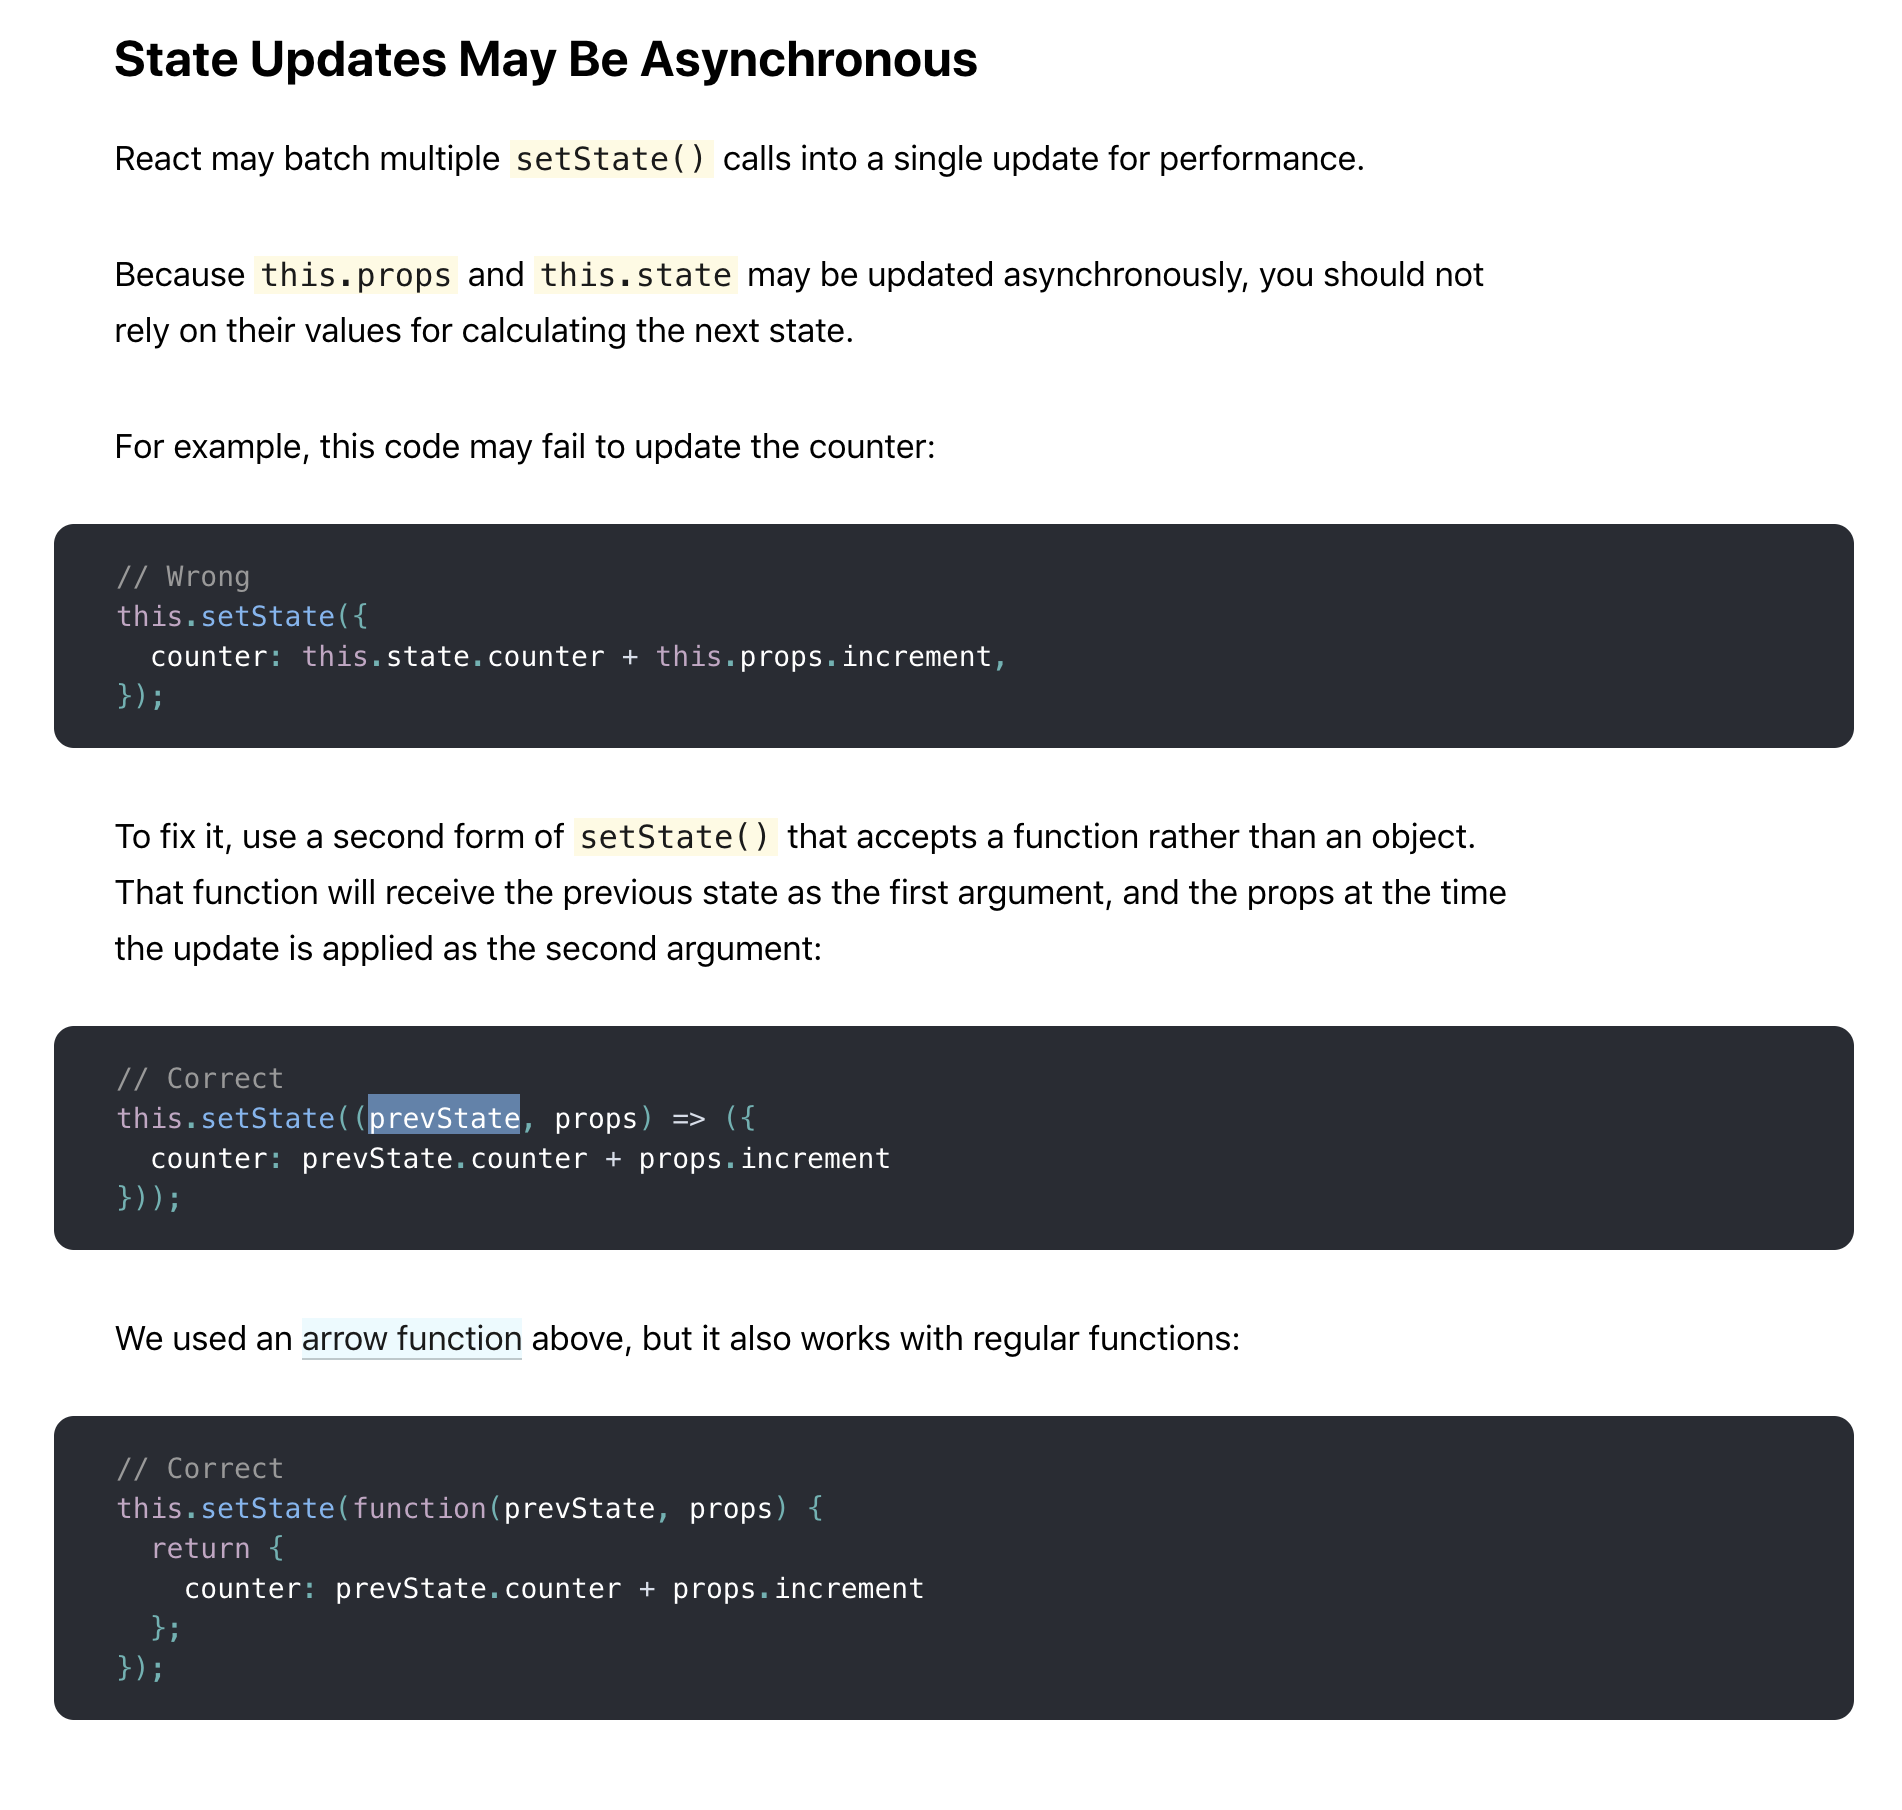 Name of the first argument of the setState() updater